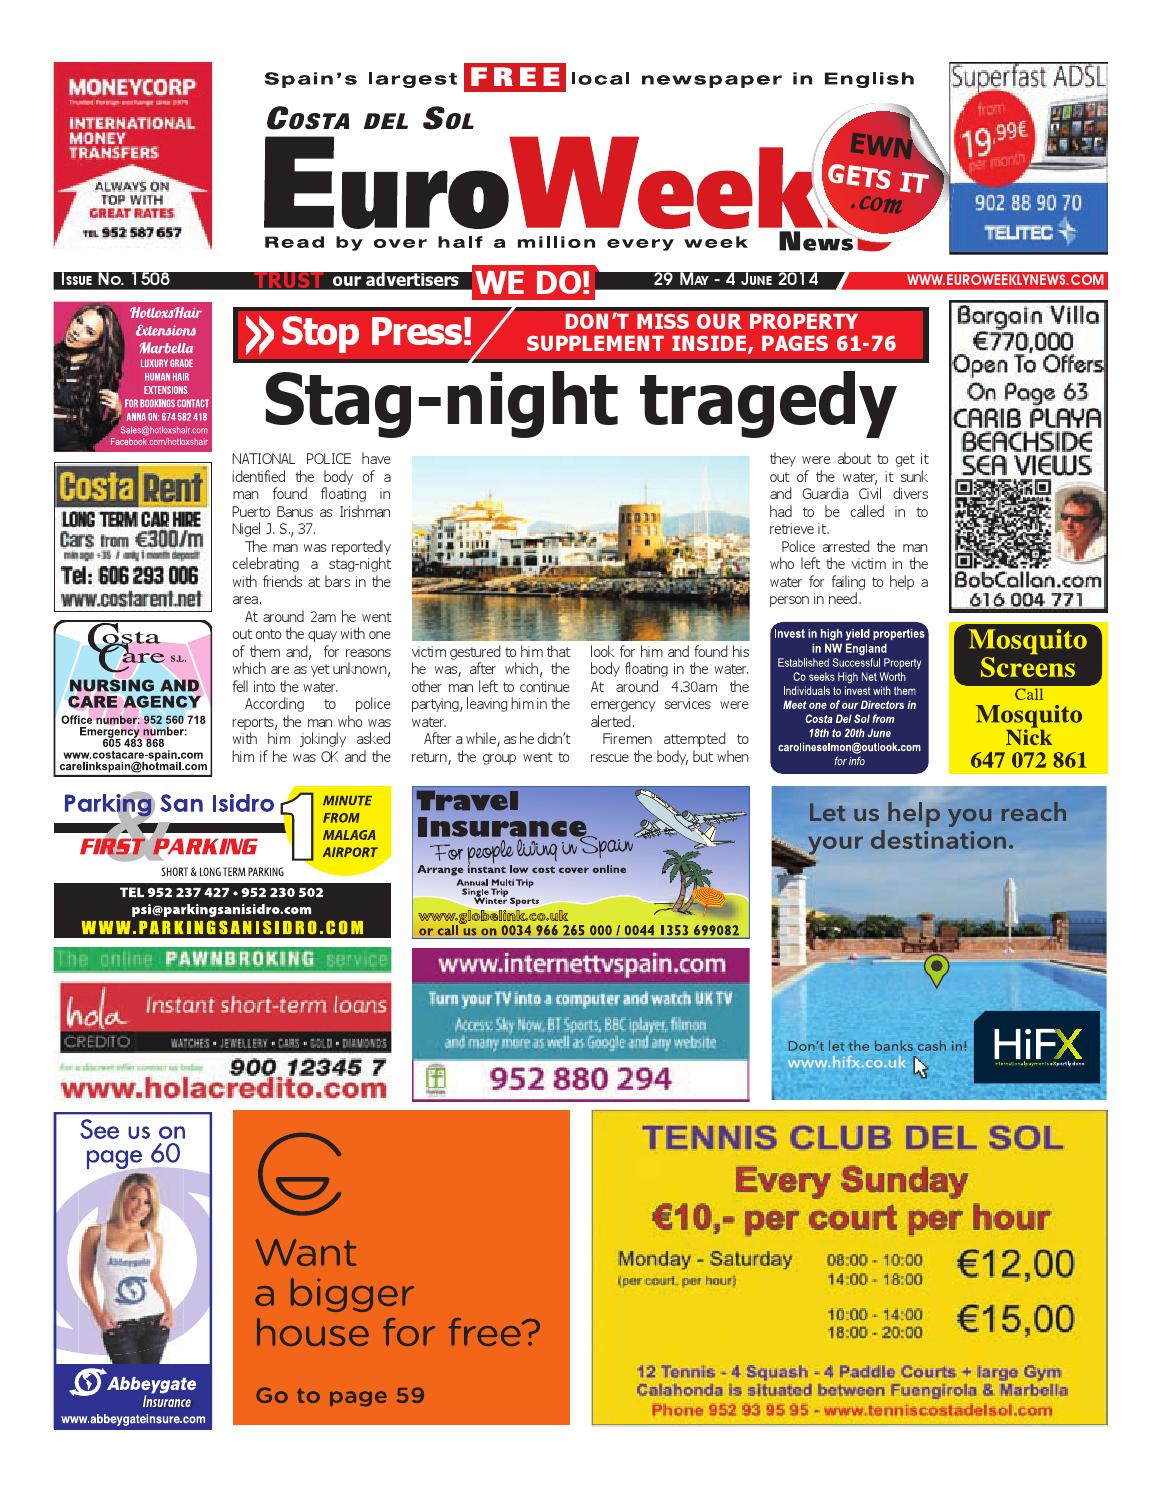 euro weekly news costa del sol 29 may 4 june issue by euro weekly news media sa issuu